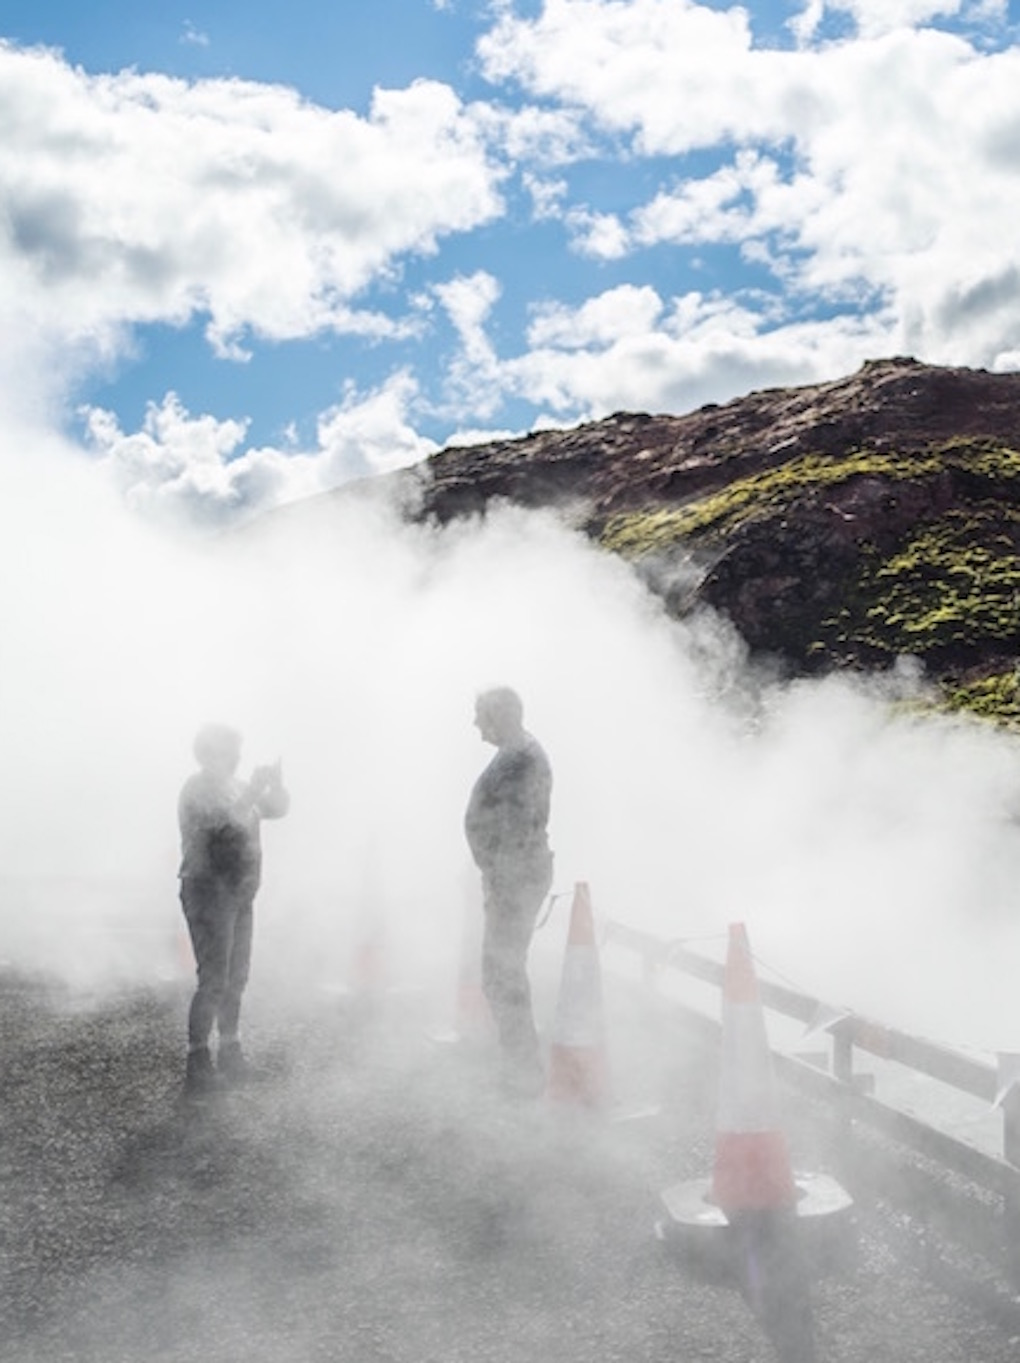 Deildartunguhver hot spring - off the beaten track in Iceland